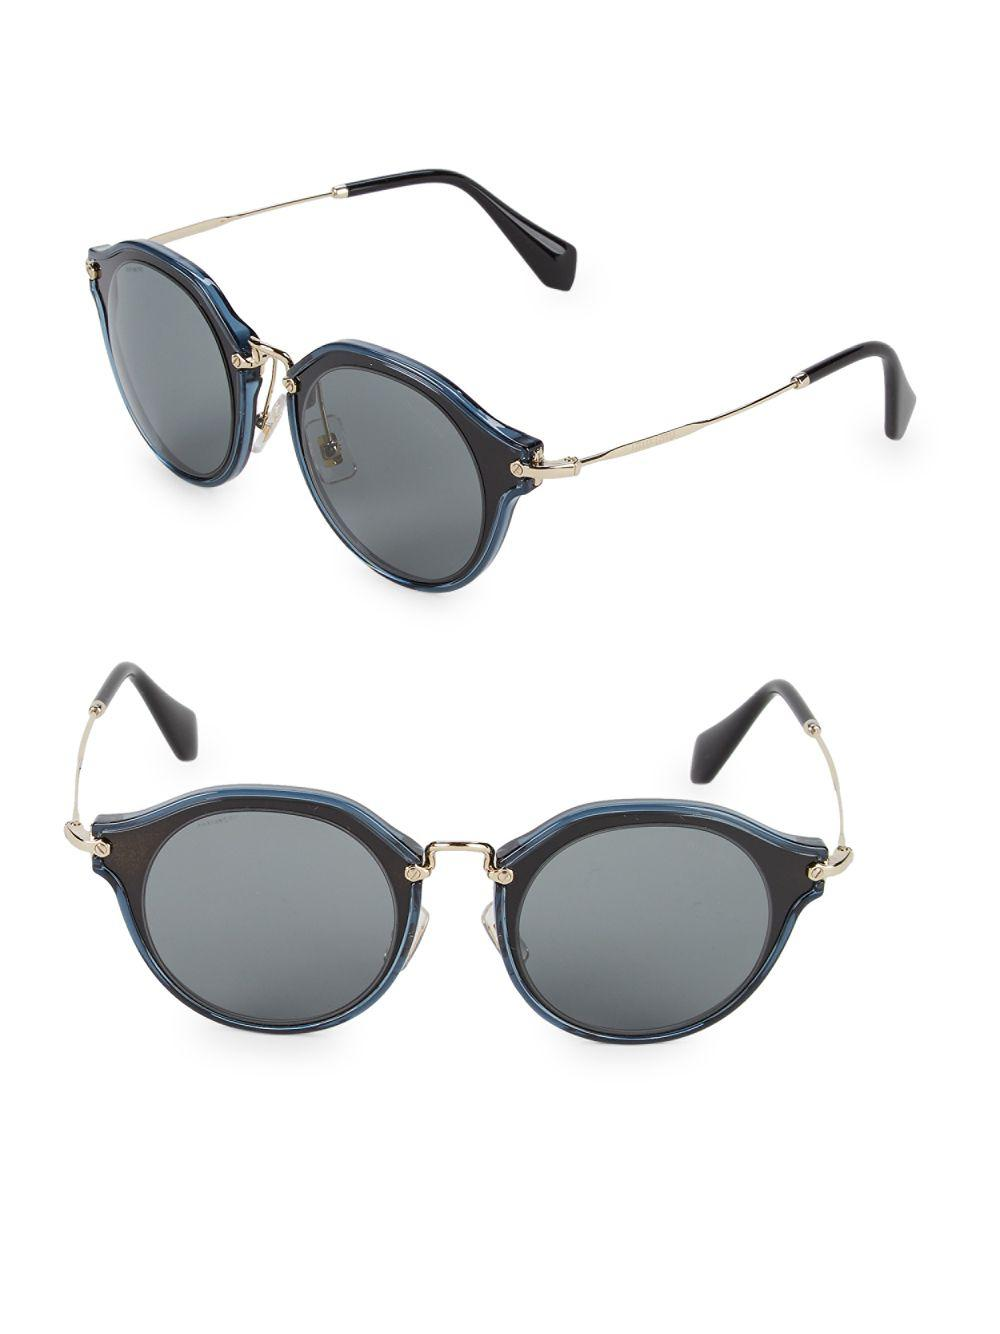 aa19422c93 Miu Miu Two-tone 49mm Professor Sunglasses in Metallic - Lyst